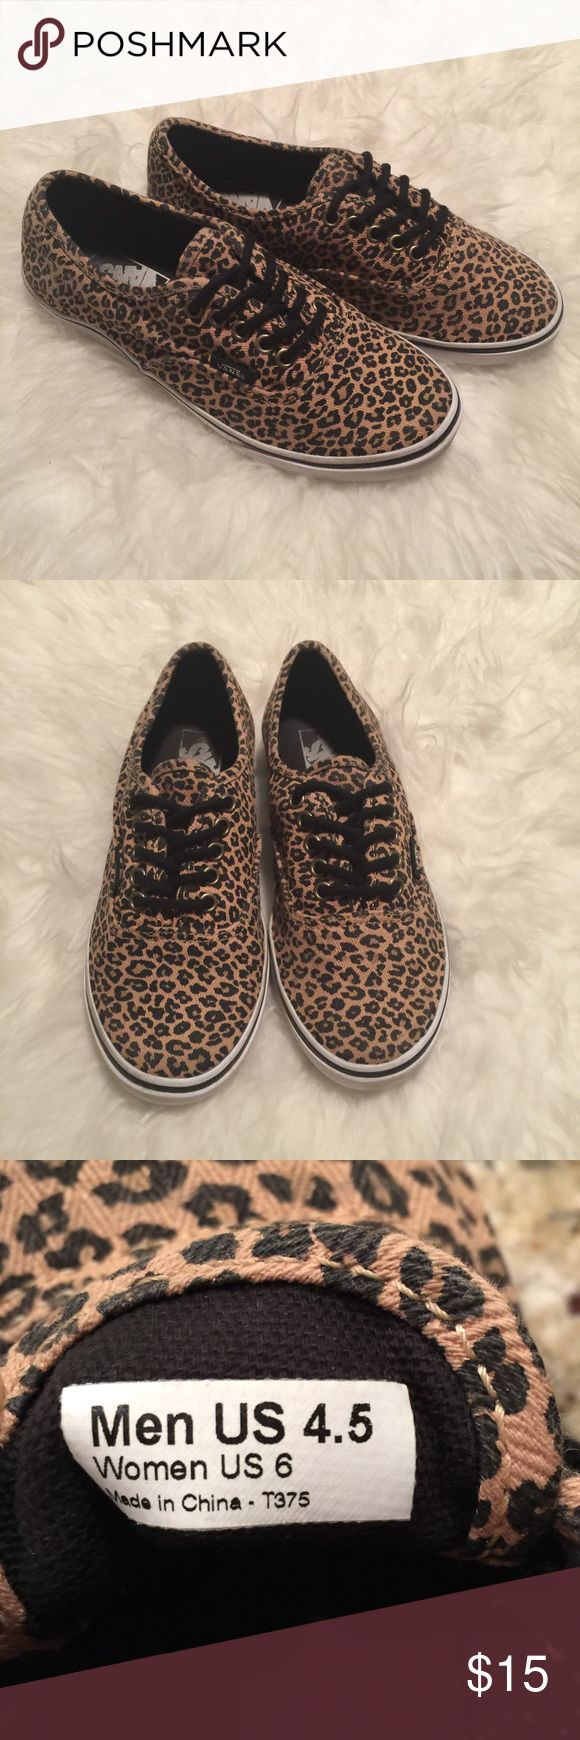 Leopard vans. Leopard print vans. Leopard shoes Very good used condition leopard Vans. Minimal wear with light fading. No holes. Please see photos for wear and details. No low ball offers, reasonable offers considered. Vans Shoes Sneakers